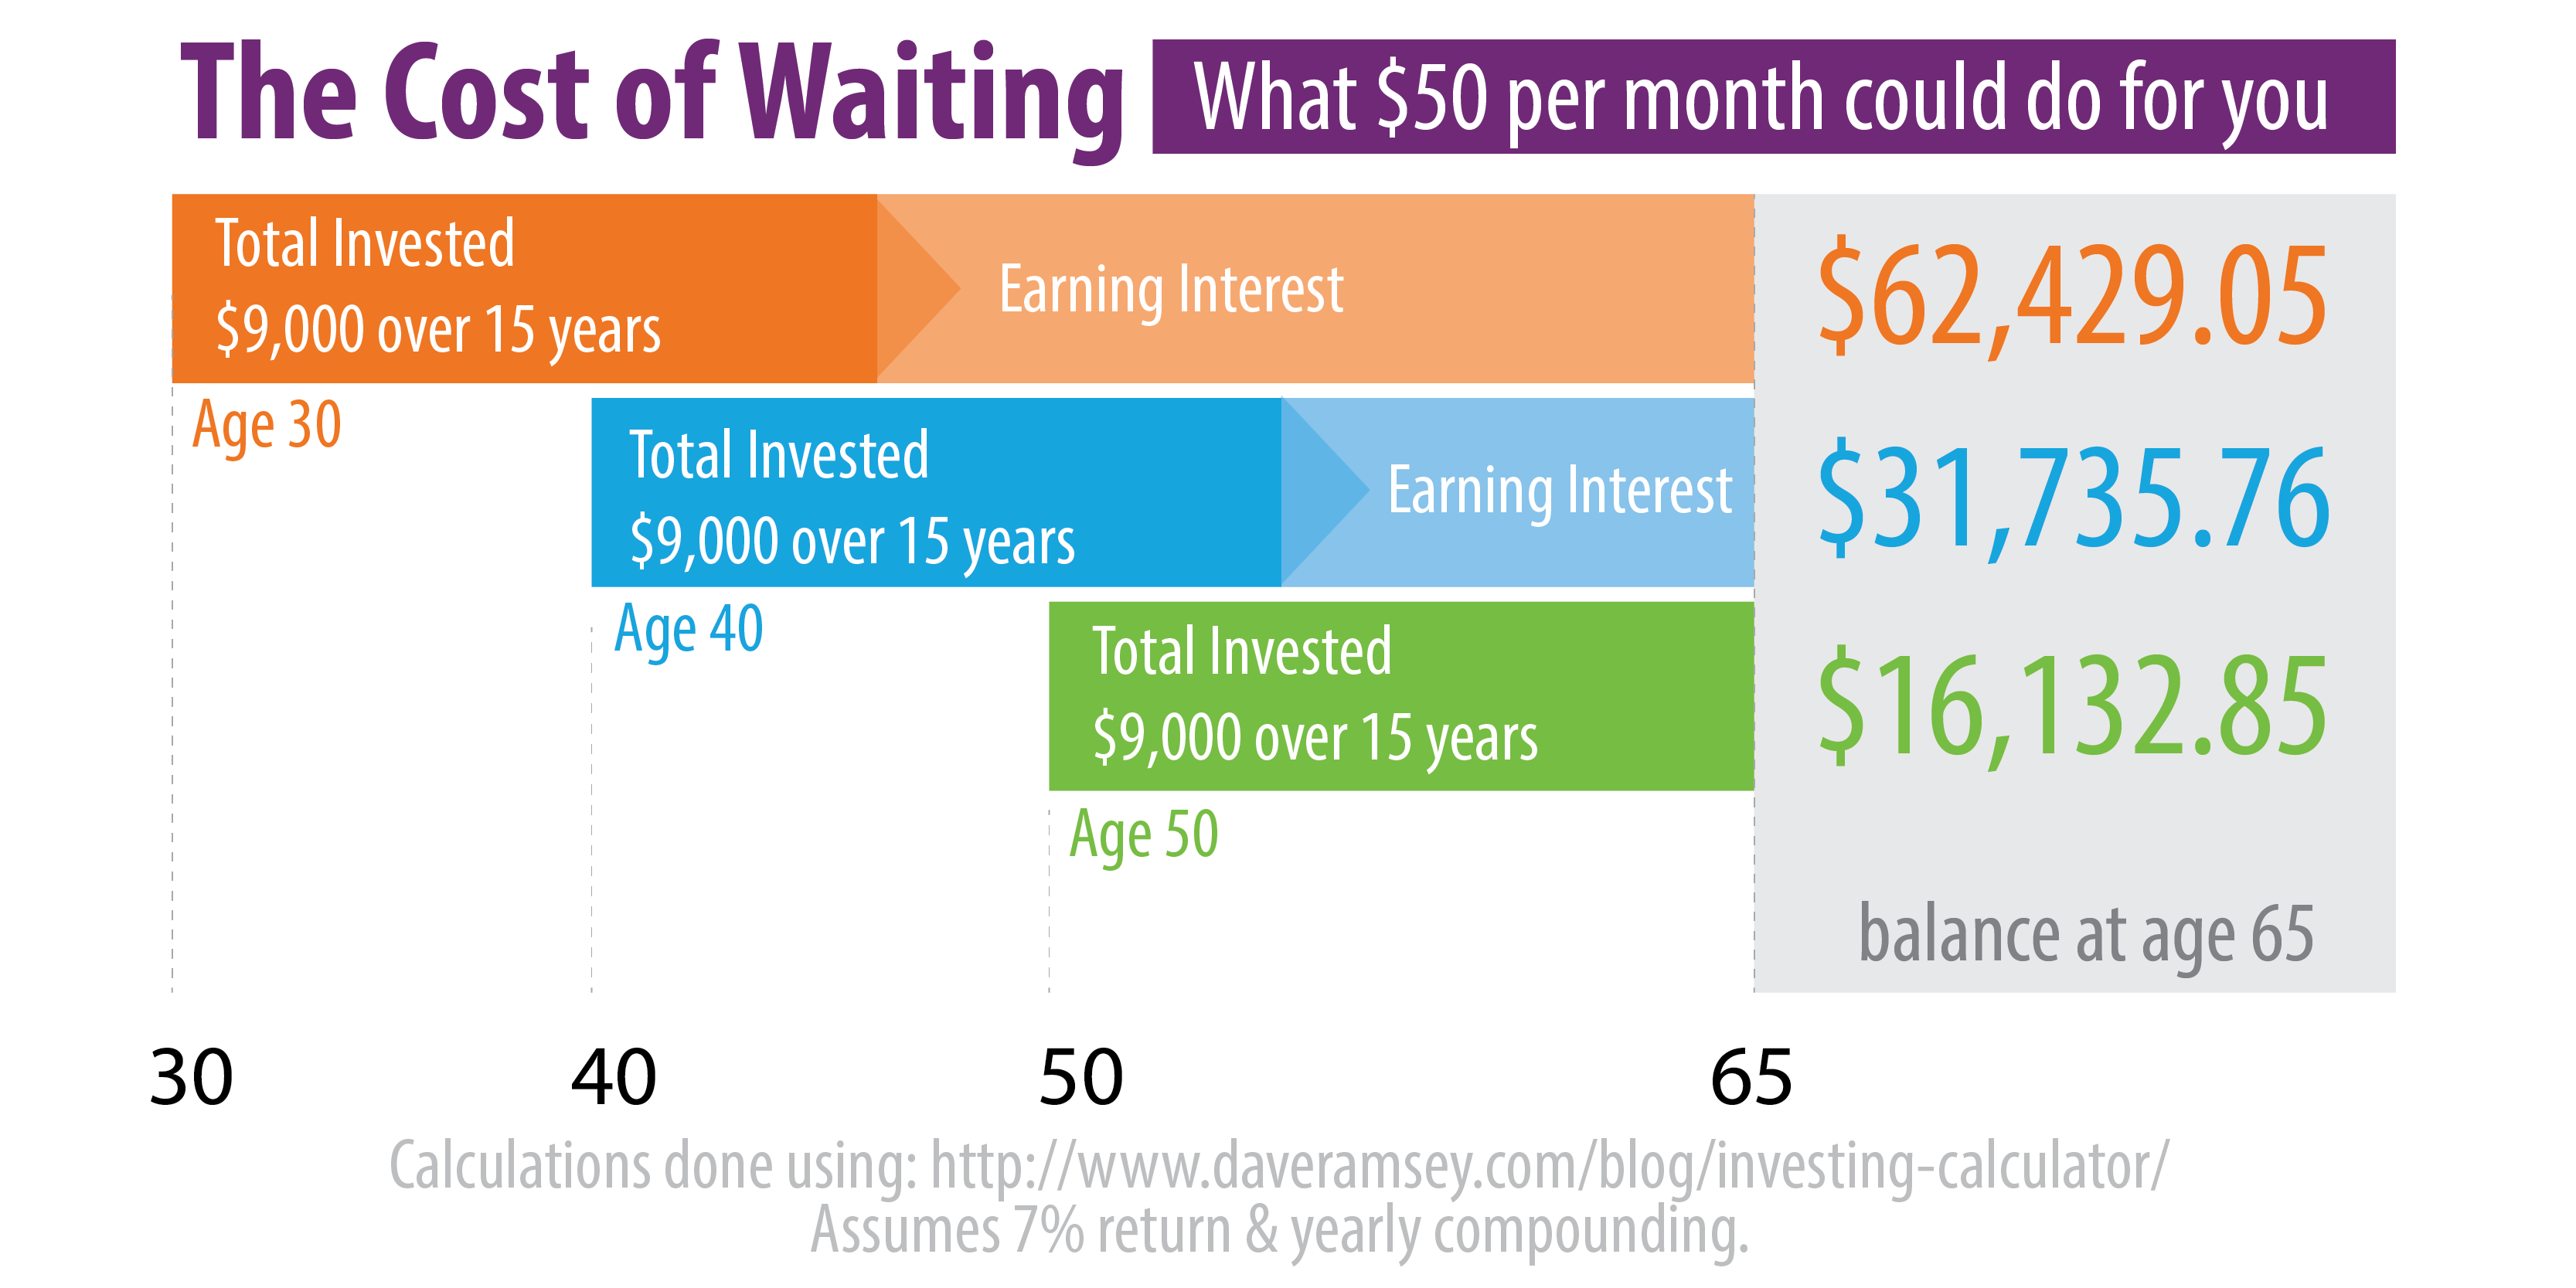 Cost of Waiting to Save Chart, the sooner you start the better.